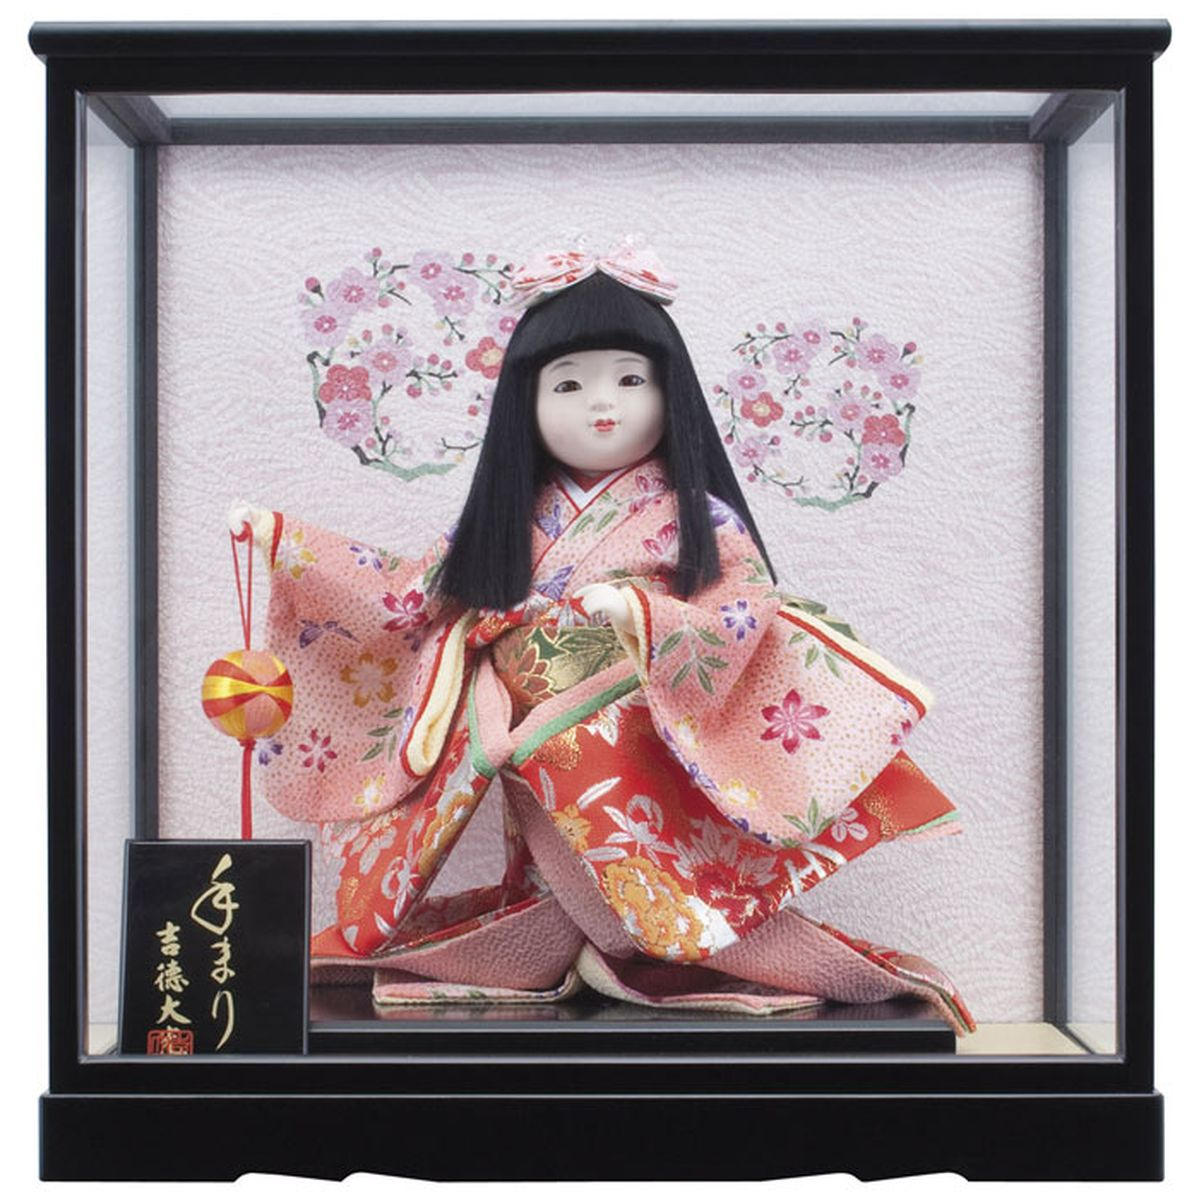 Hina dolls popular Yoshi Tak large case ornament into the Compact's first  annual Festival dolls case Gil Tak world dolls Doll World